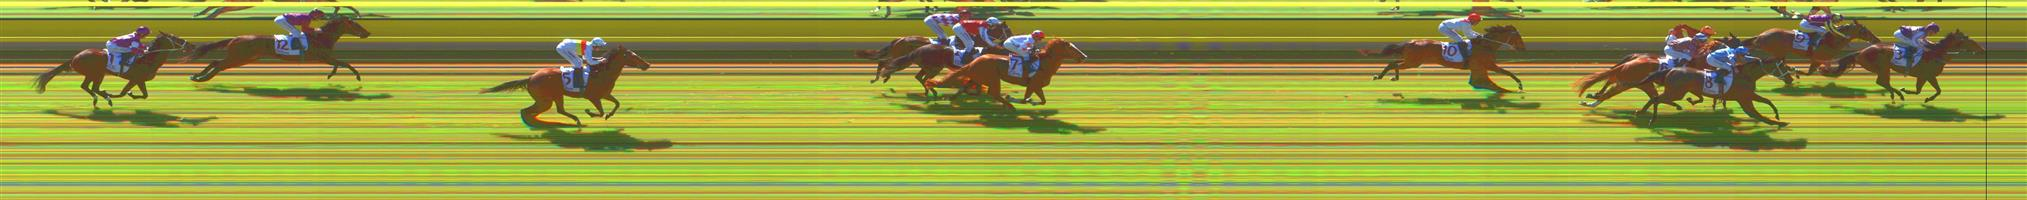 WARRACKNABEAL Race 3 No. 9 Teebo  Result : 2nd at SP $7.50. After having a rails run, was unable to pass the winner in the straight after being out muscled in the run to the post. Outcome -0.77 Units.